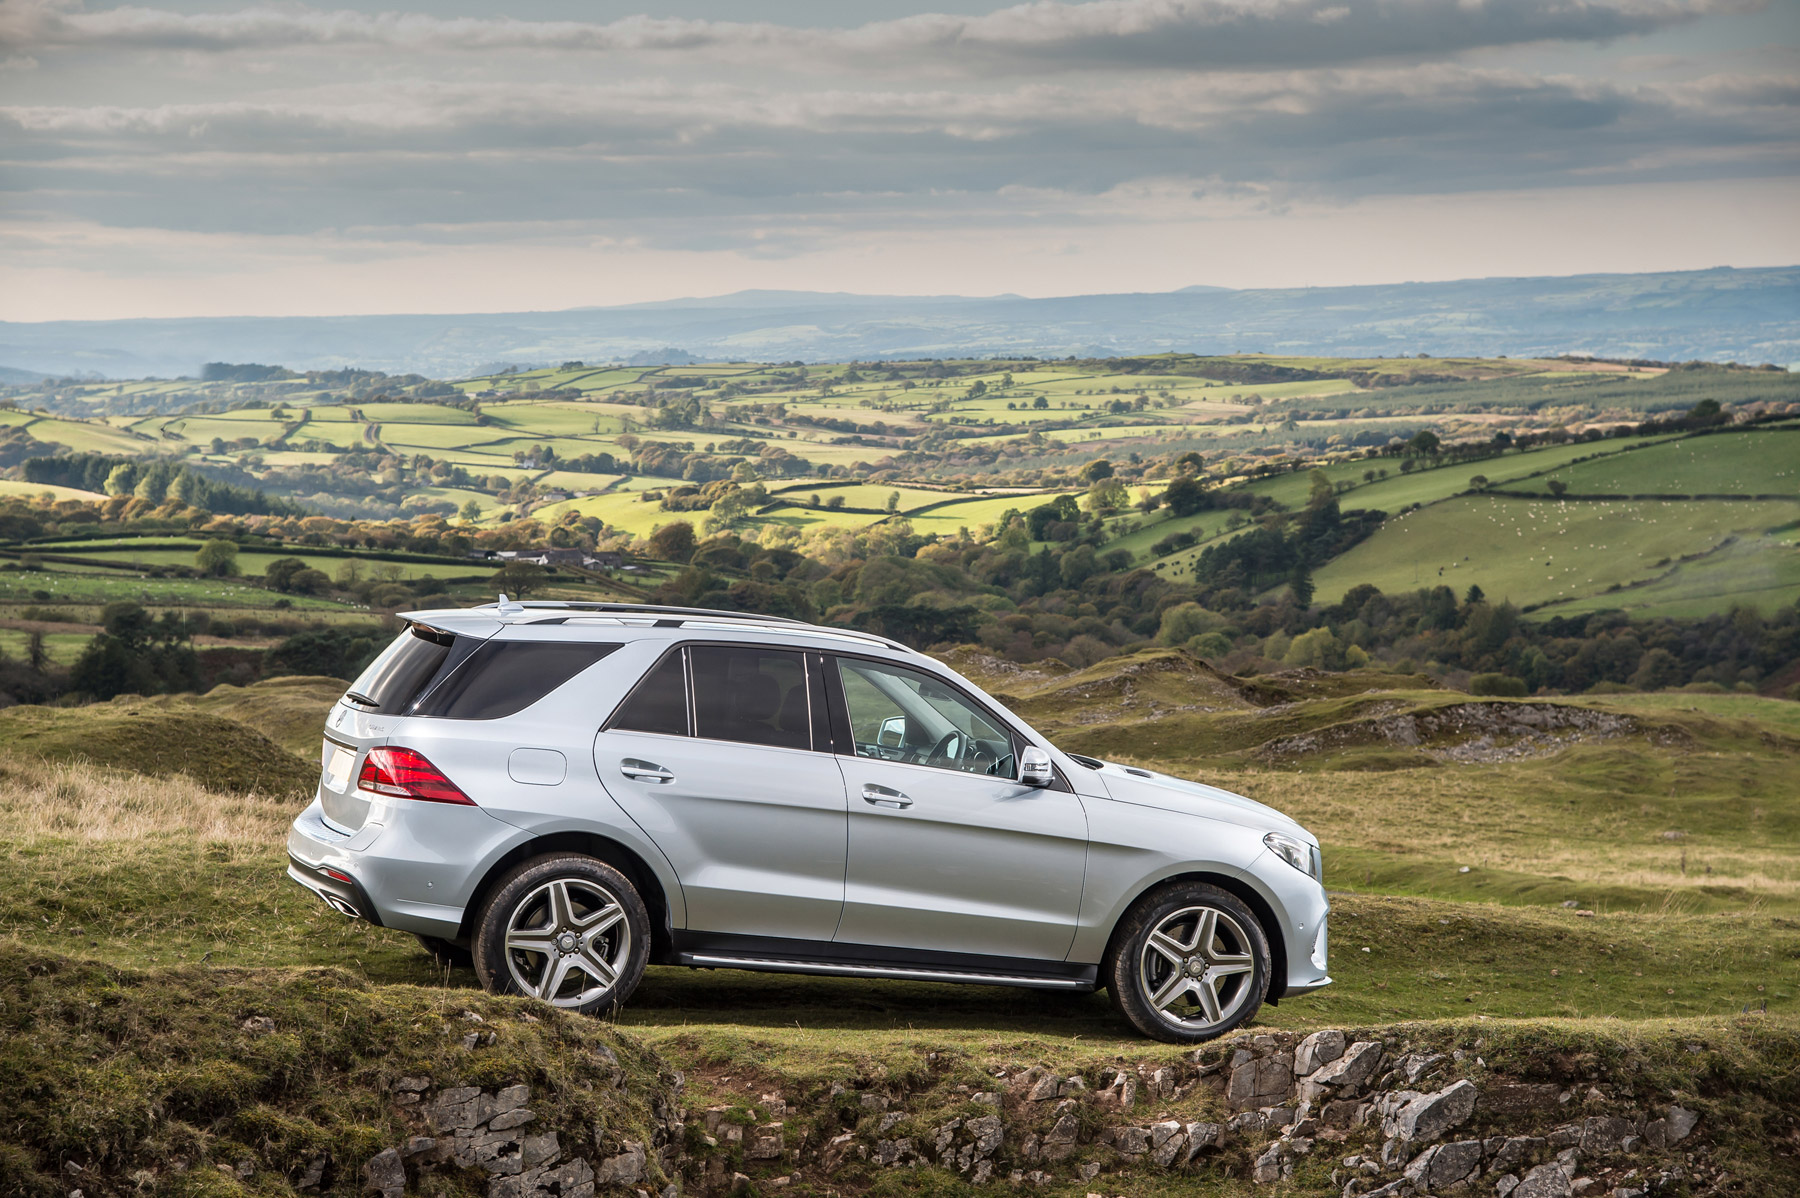 Mercedes-Benz GLE 350d SUV 4Matic AMG Line Road Test 13